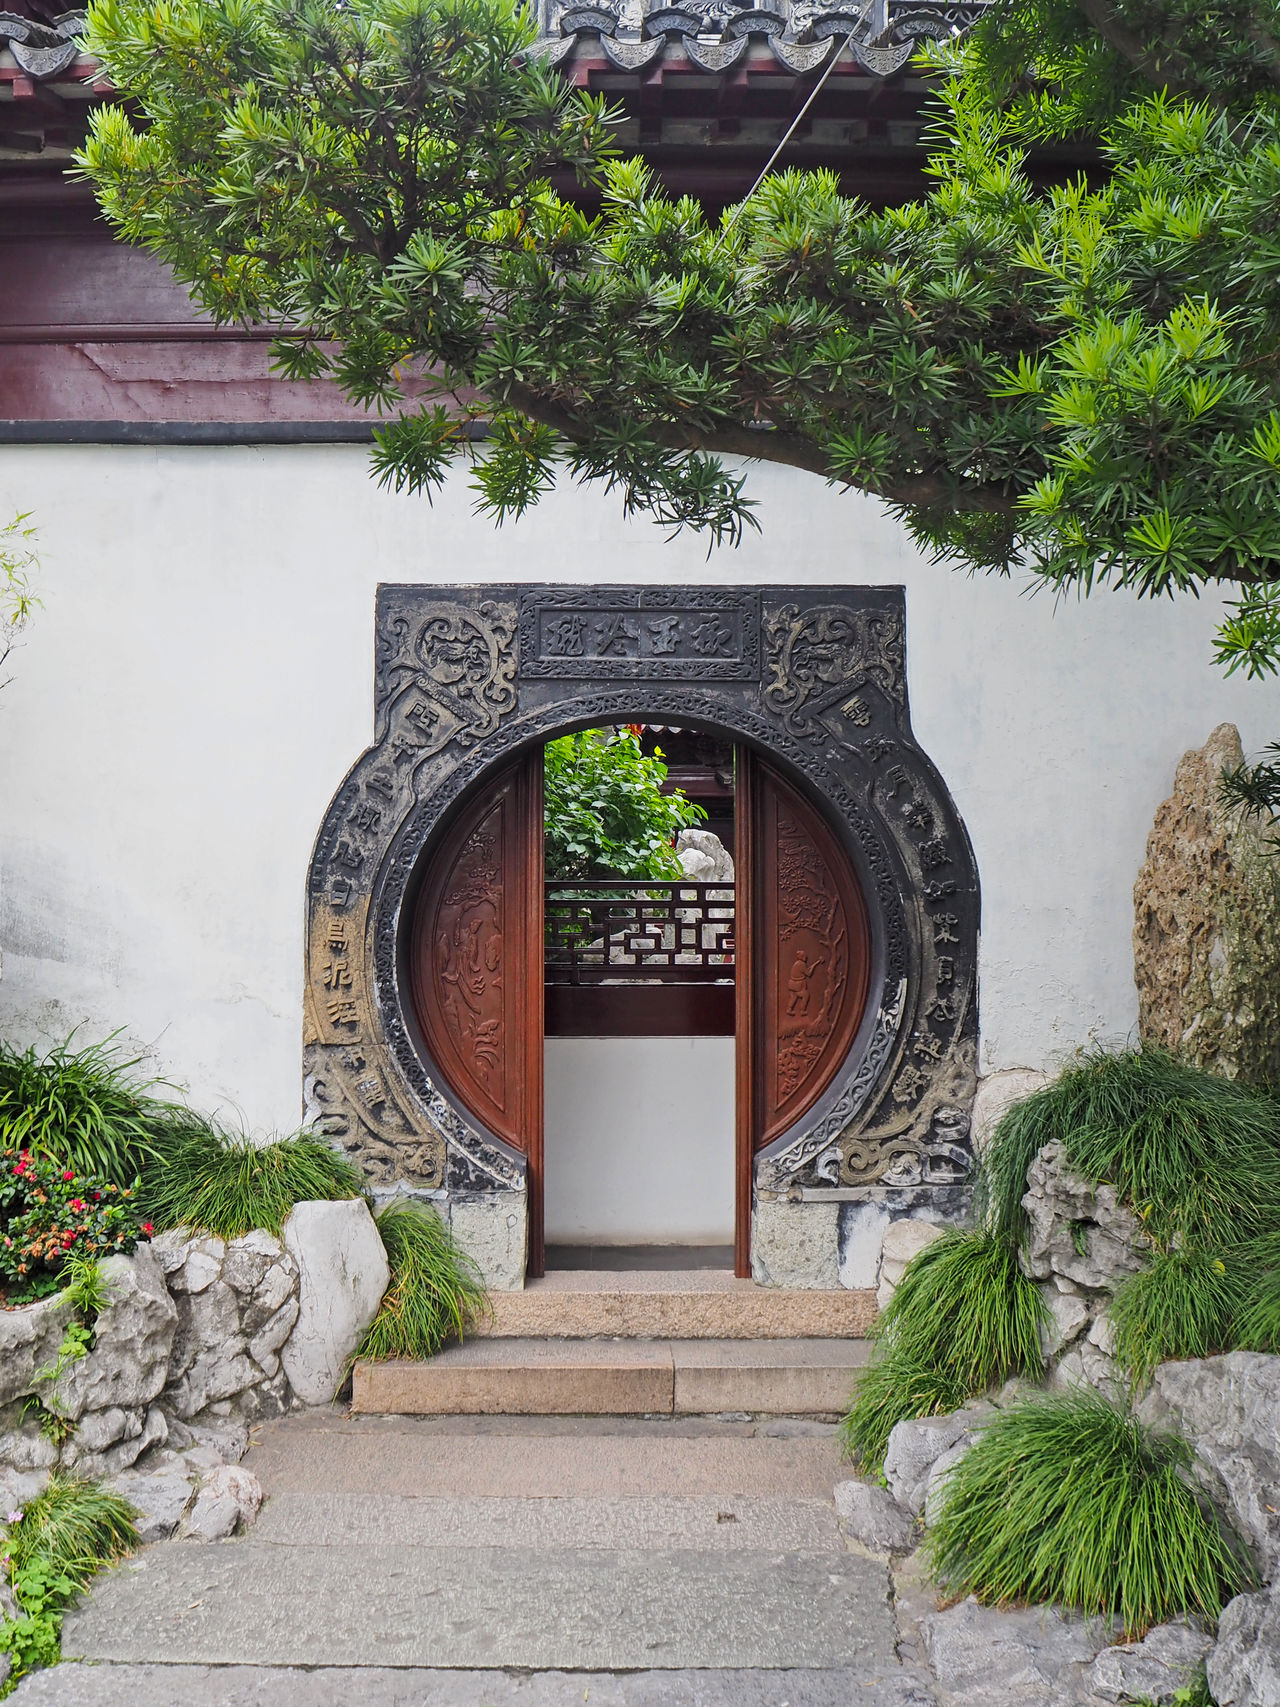 China Door Doors Entrance Round The Architect - 2015 EyeEm Awards Pinetrees Traditional Garden Architecture